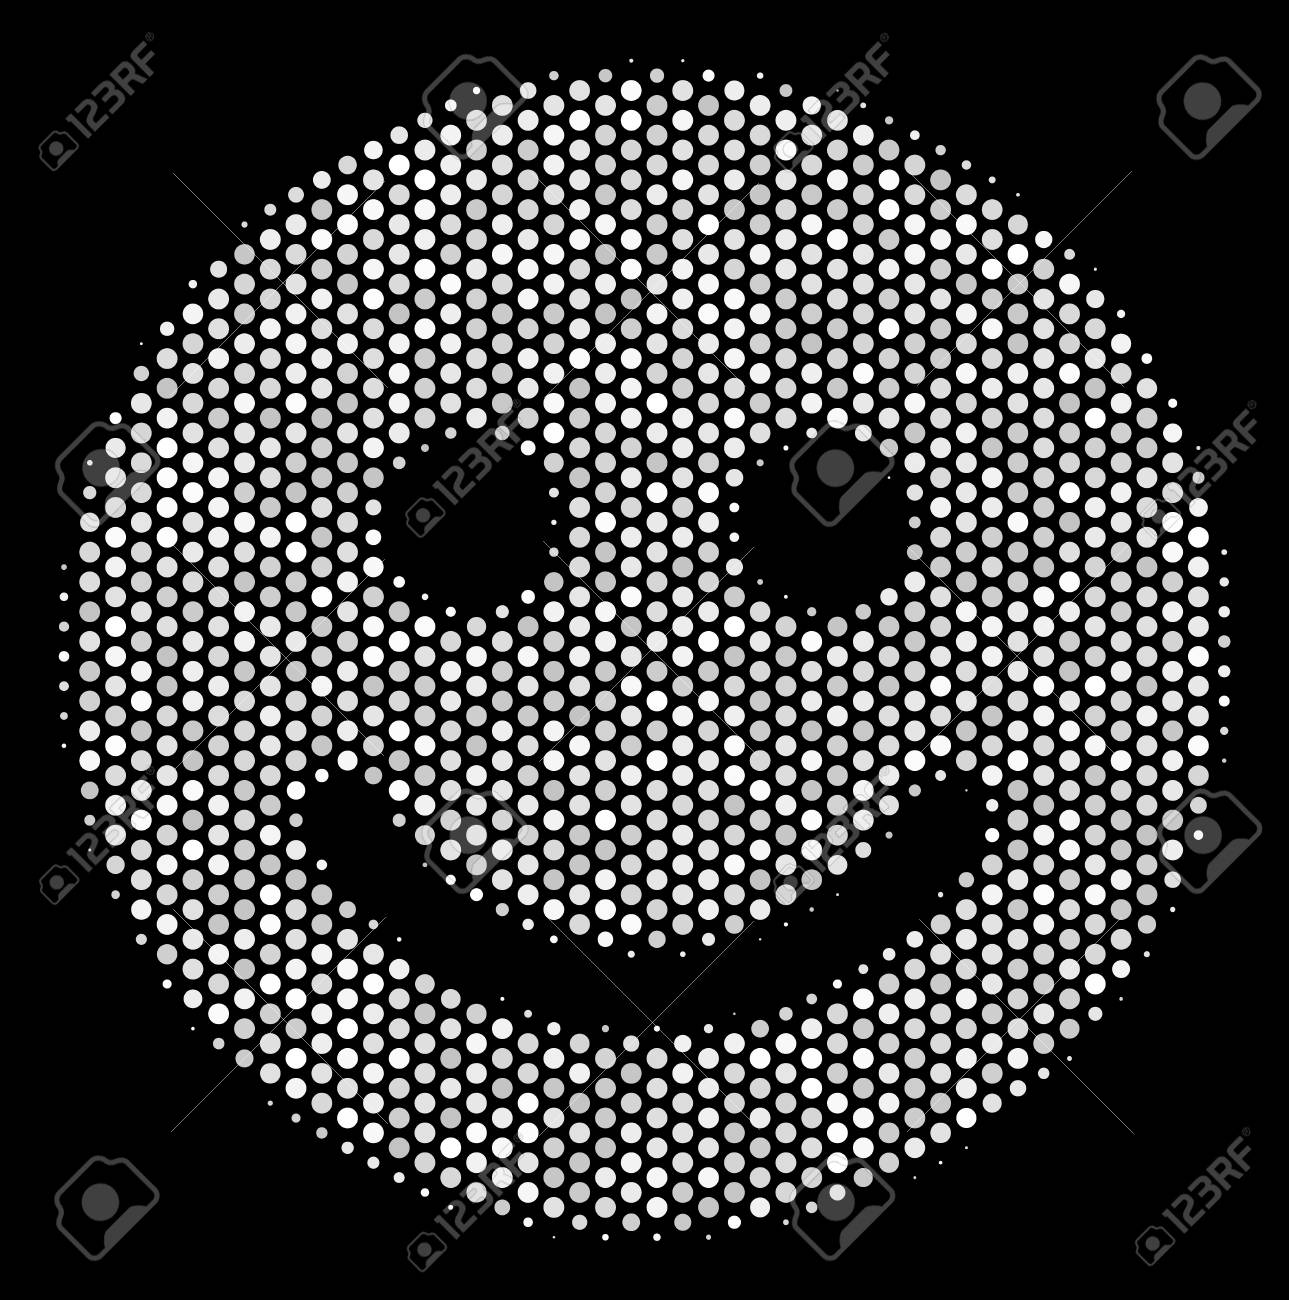 Pixelated White Glad Smile Icon On A Black Background A Vector 1289x1300